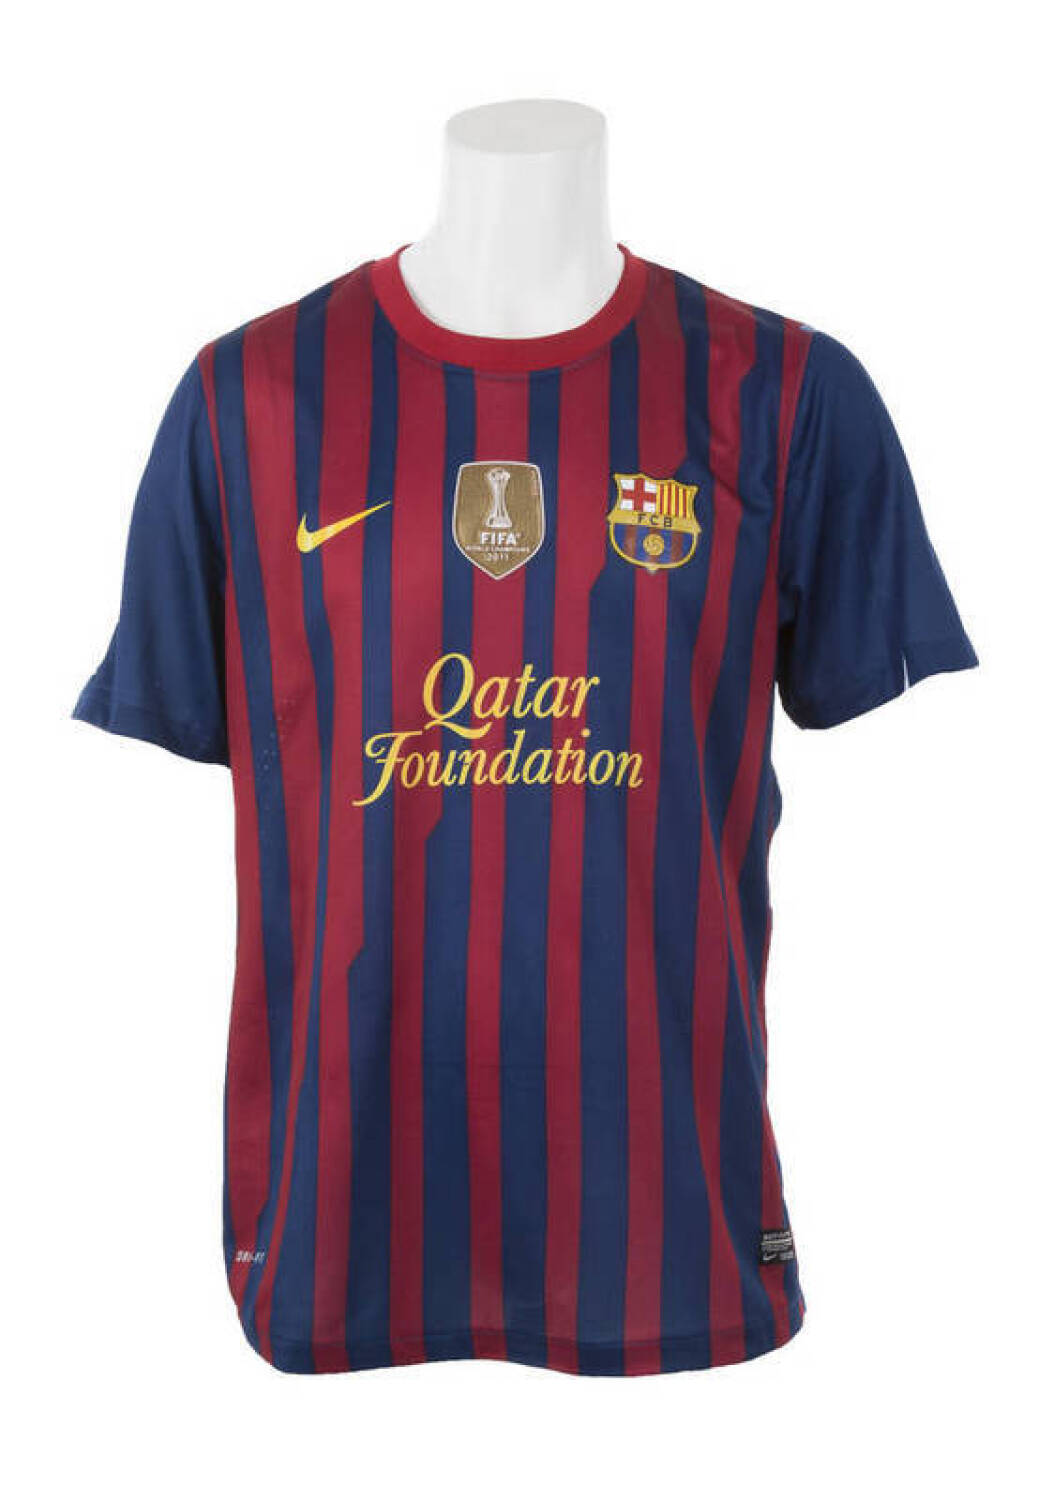 detailed look b31d9 74e1e LIONEL MESSI 2011-12 FC BARCELONA GAME WORN JERSEY - Price ...